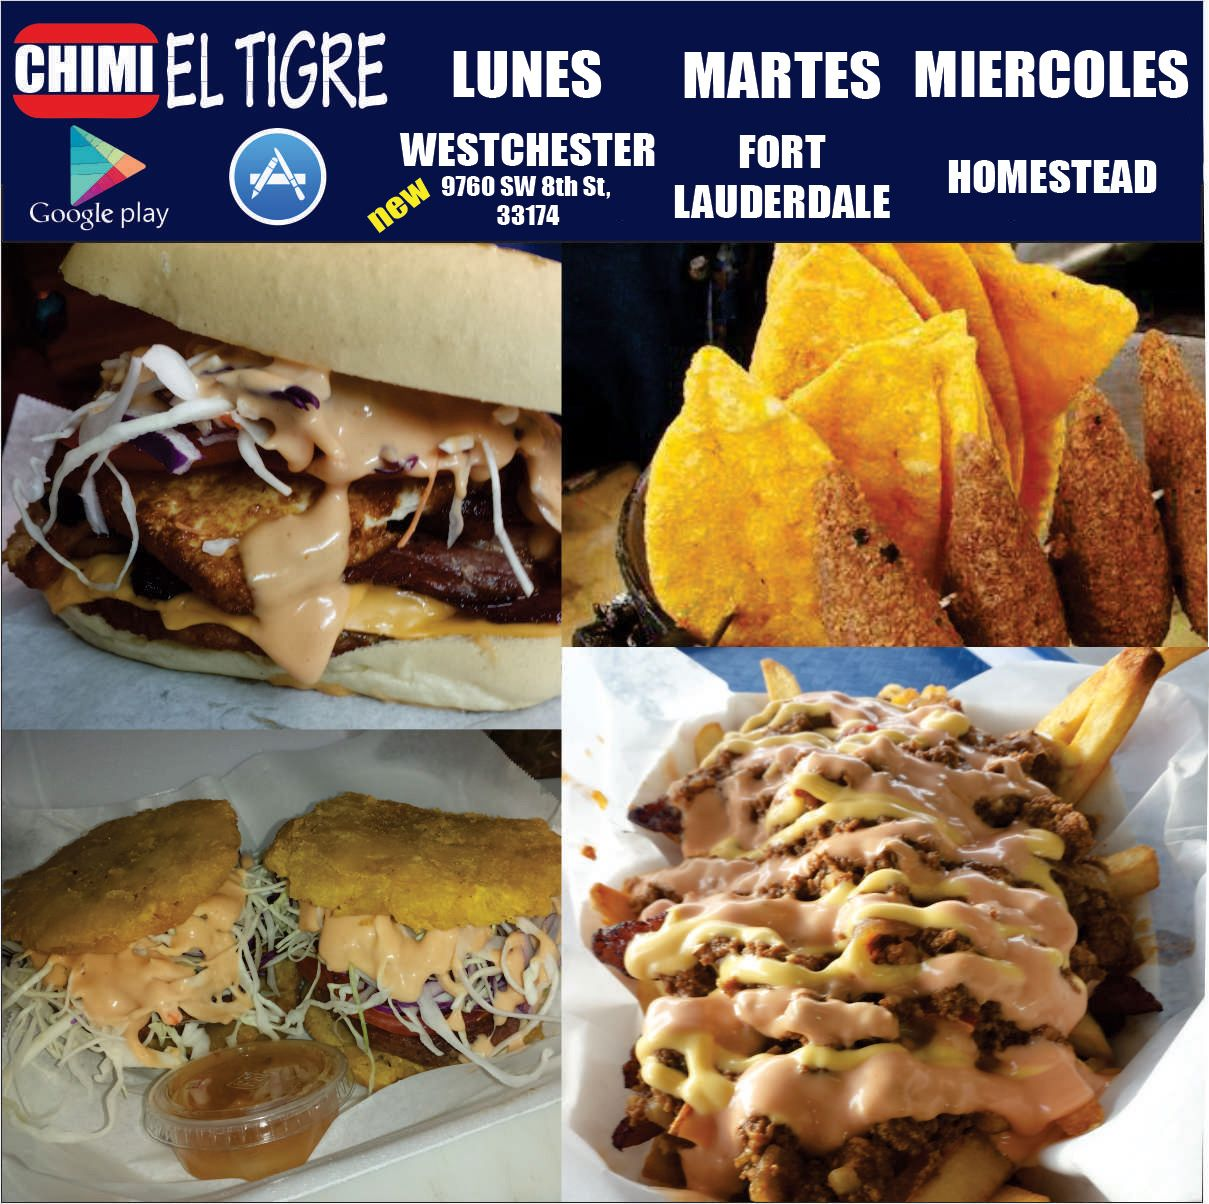 MARTES   - PLAZA 11AM-11PM    10834 SW 104th St, 33176  - Ft LAUDERDALE 6PM-12AM  8251 Sunset Strip 33322  Parqueo Bravo  #ChimiTigre #DominicanFood